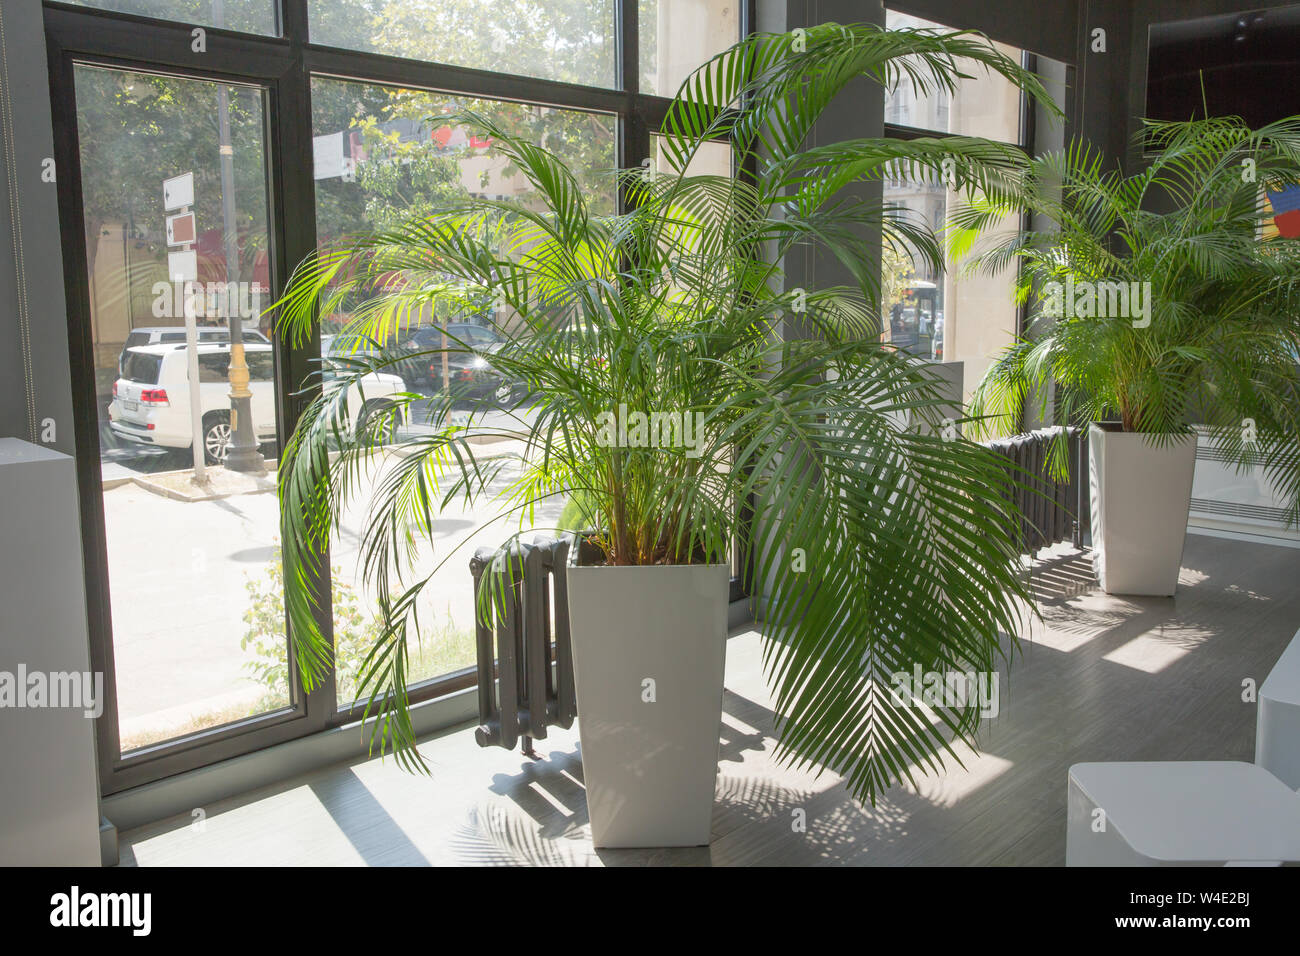 Indoor Flower Pots Plants Large Vases In A Row Green Plant Pot Next The Window In The Morning Decorative Areca Palm Stock Photo Alamy